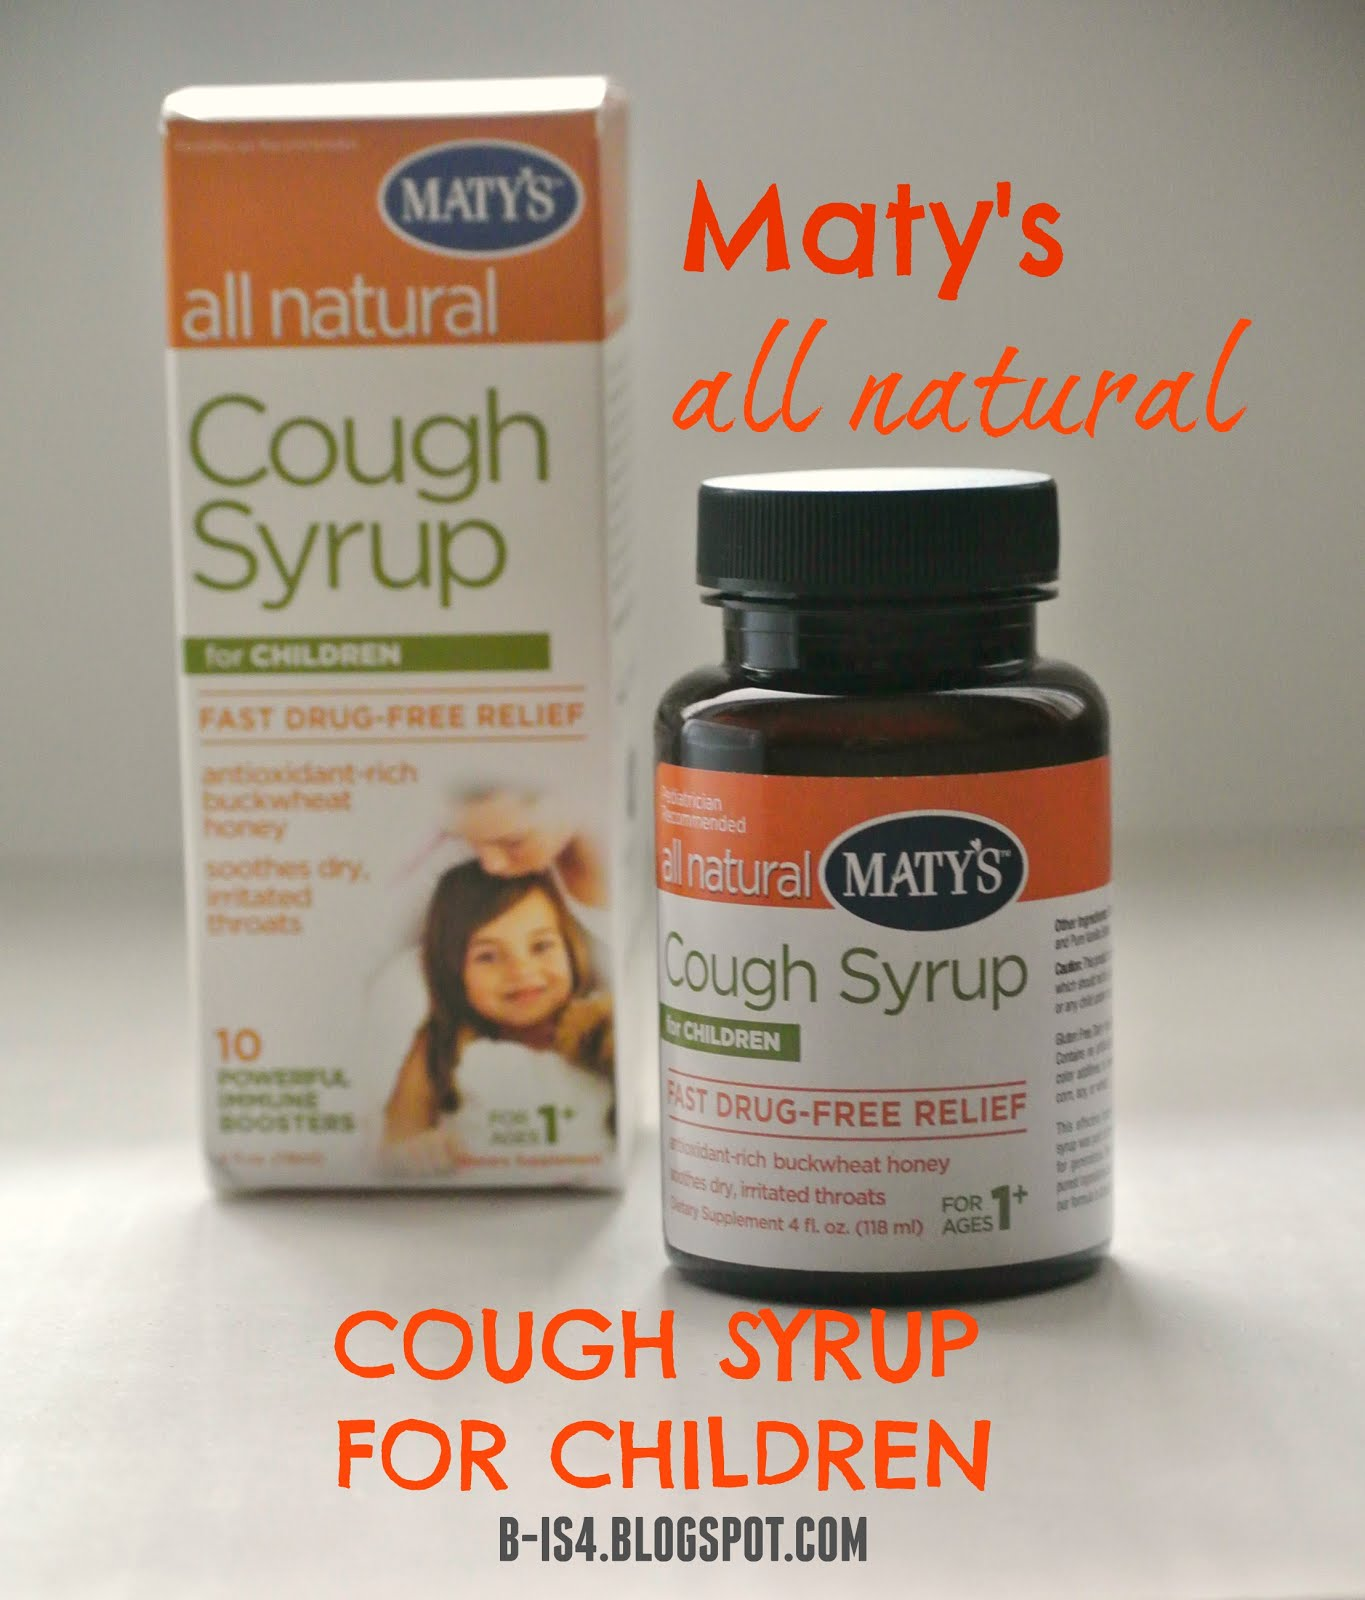 Maty's Cough Syrup for Children